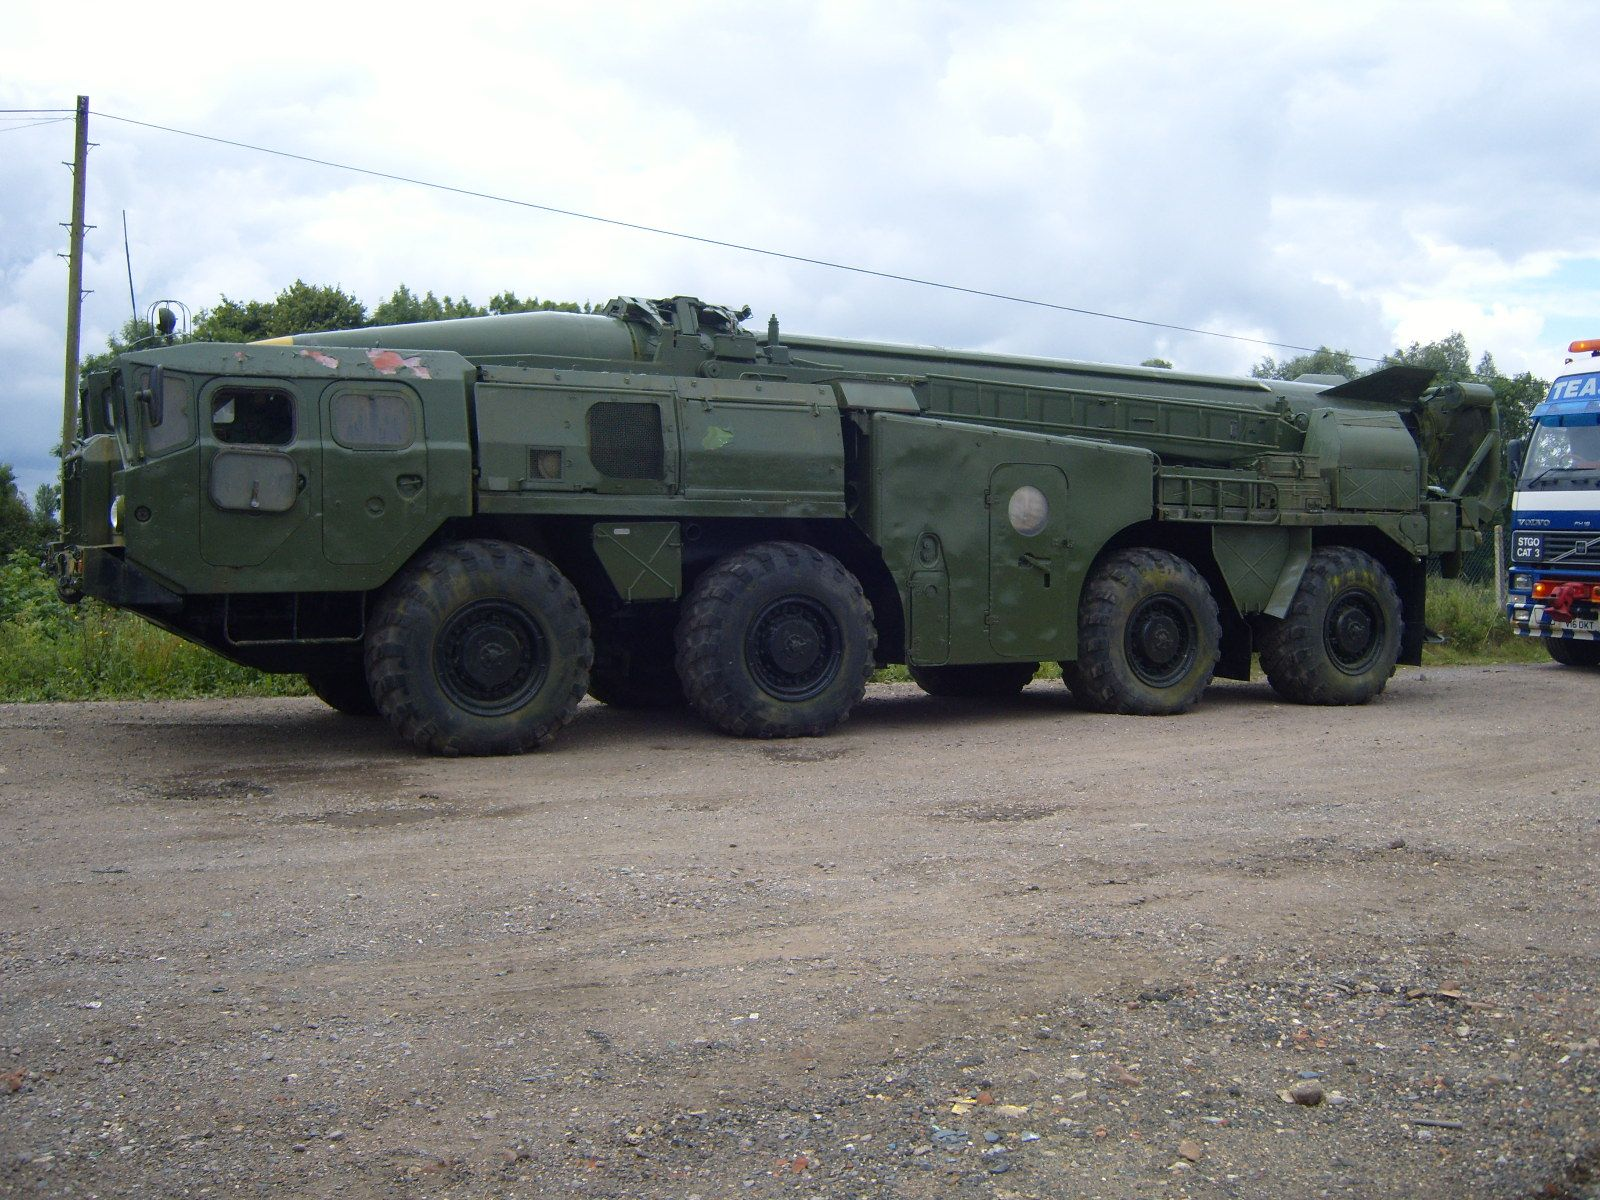 Military Vehicles For Sale >> Military Vehicles Sources For Surplus Military Vehicles